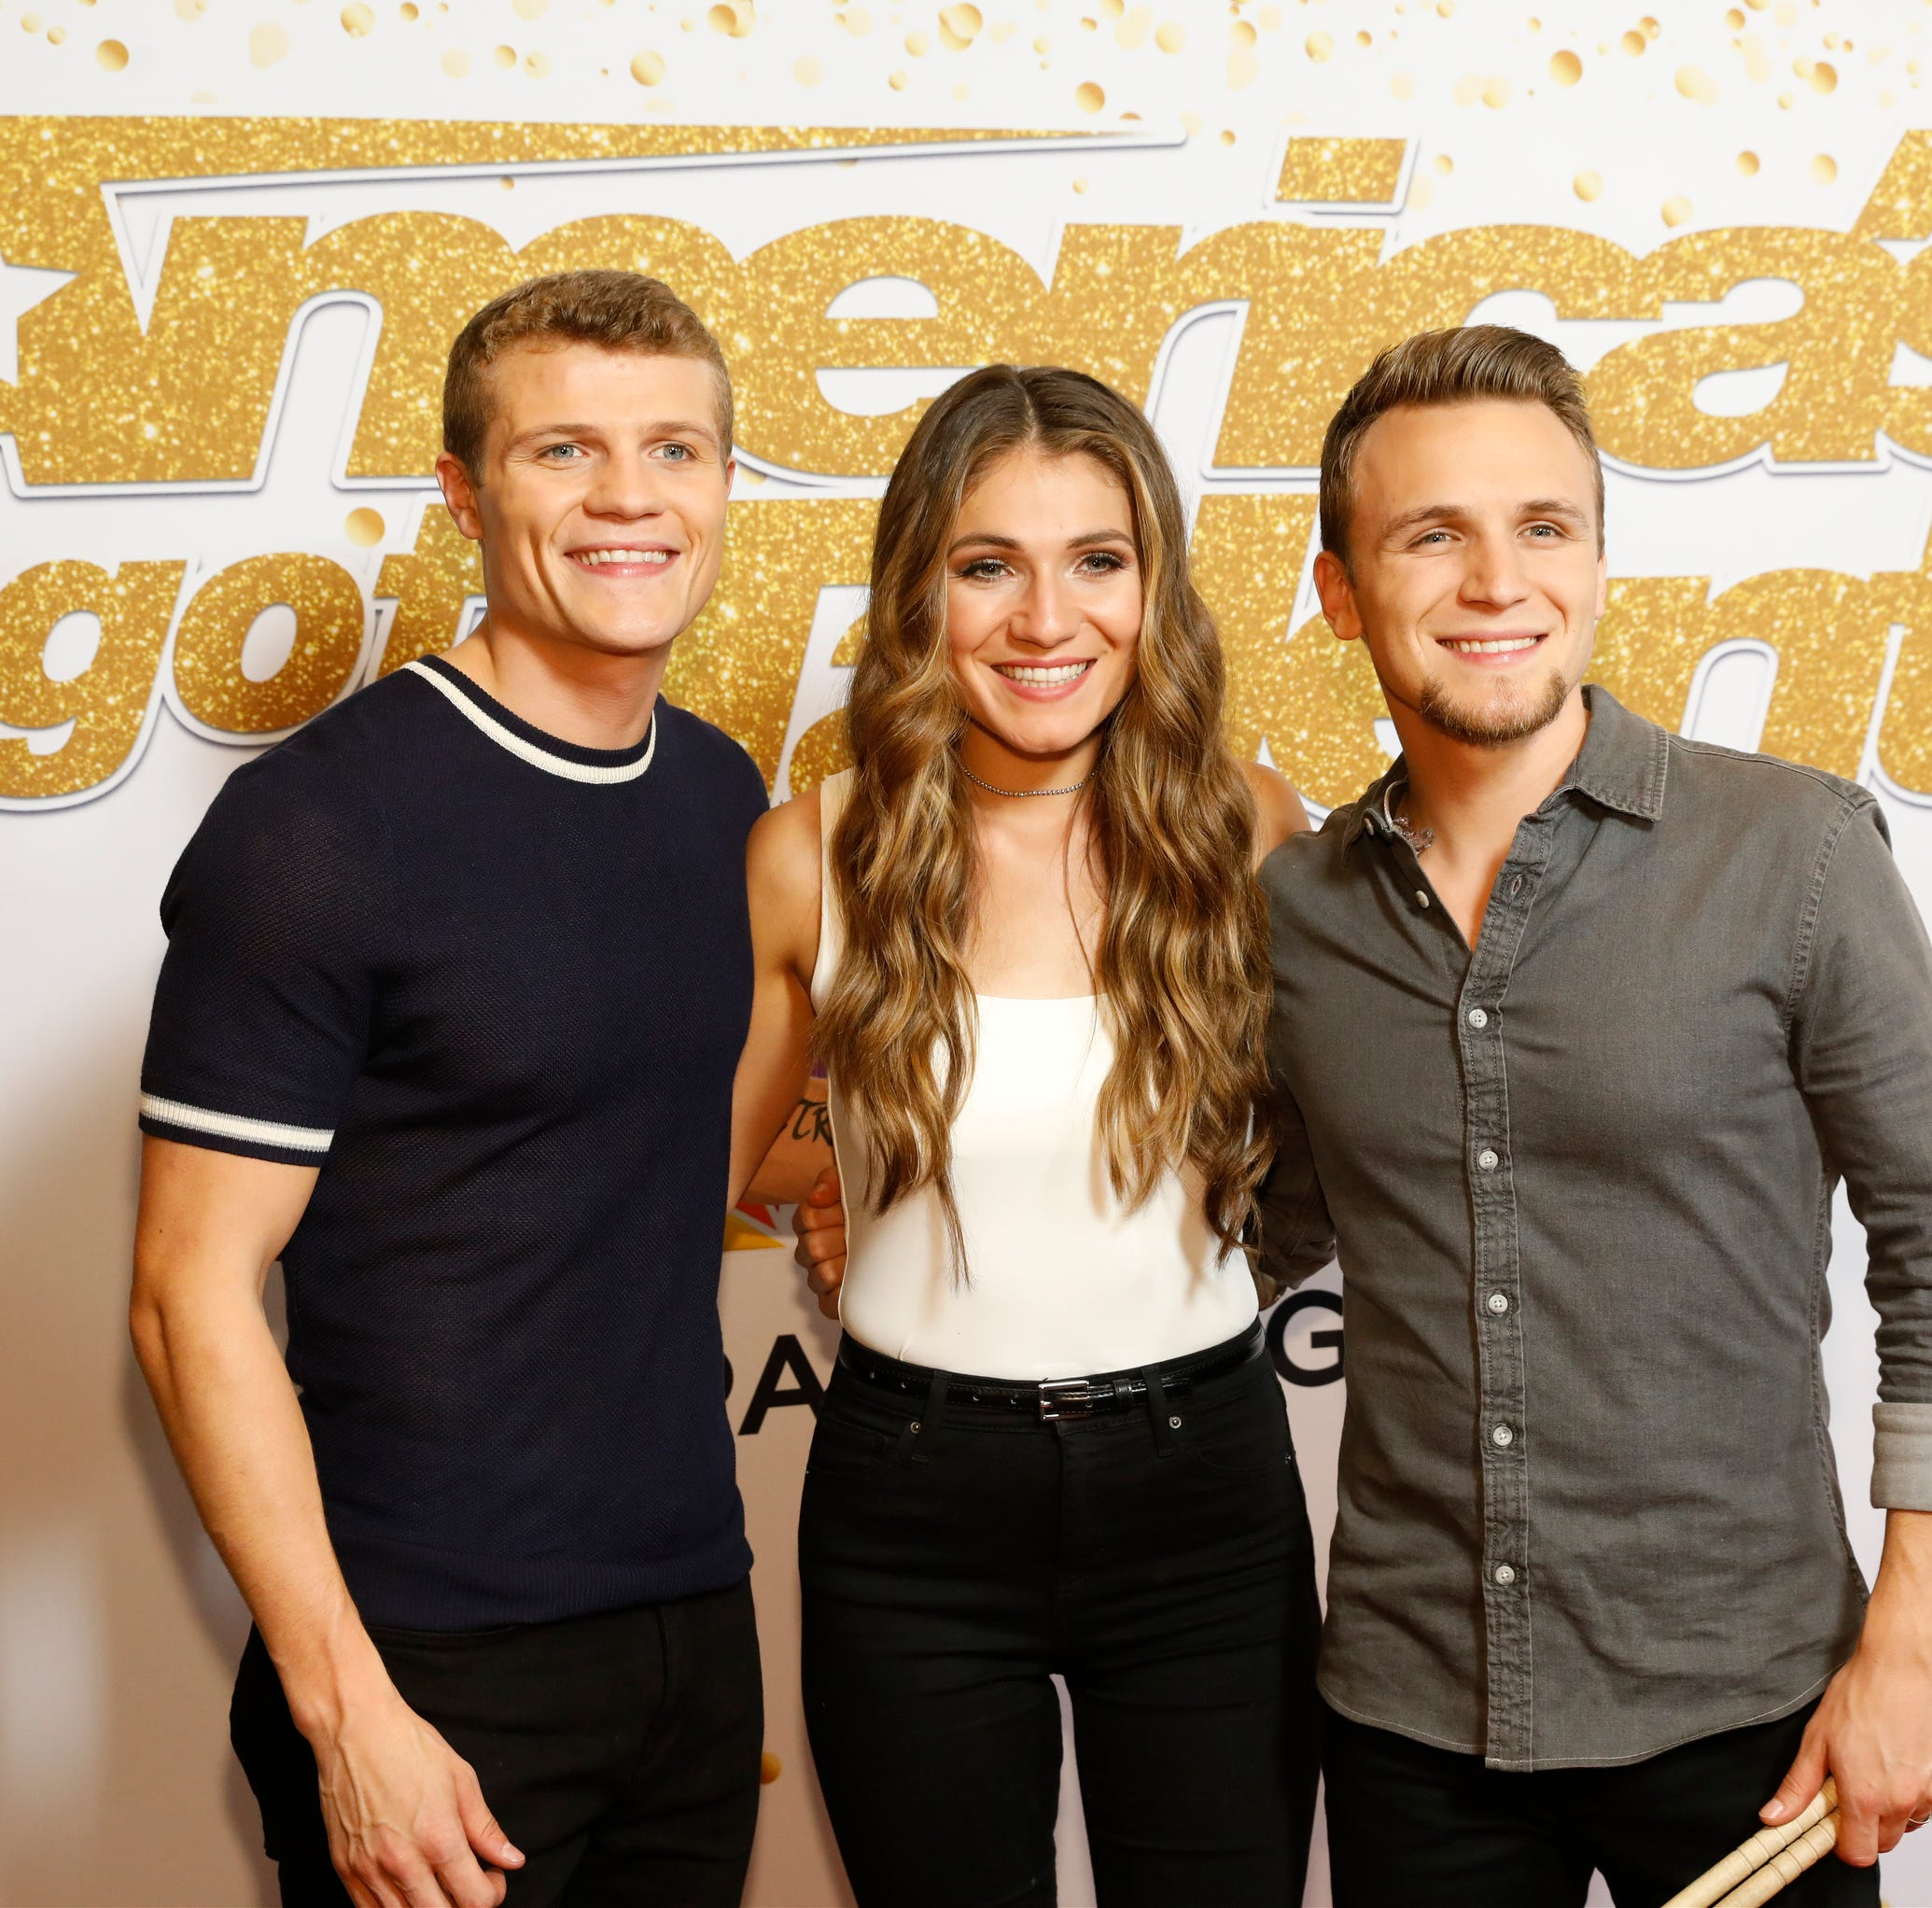 We Three voted off 'America's Got Talent'; excited for future